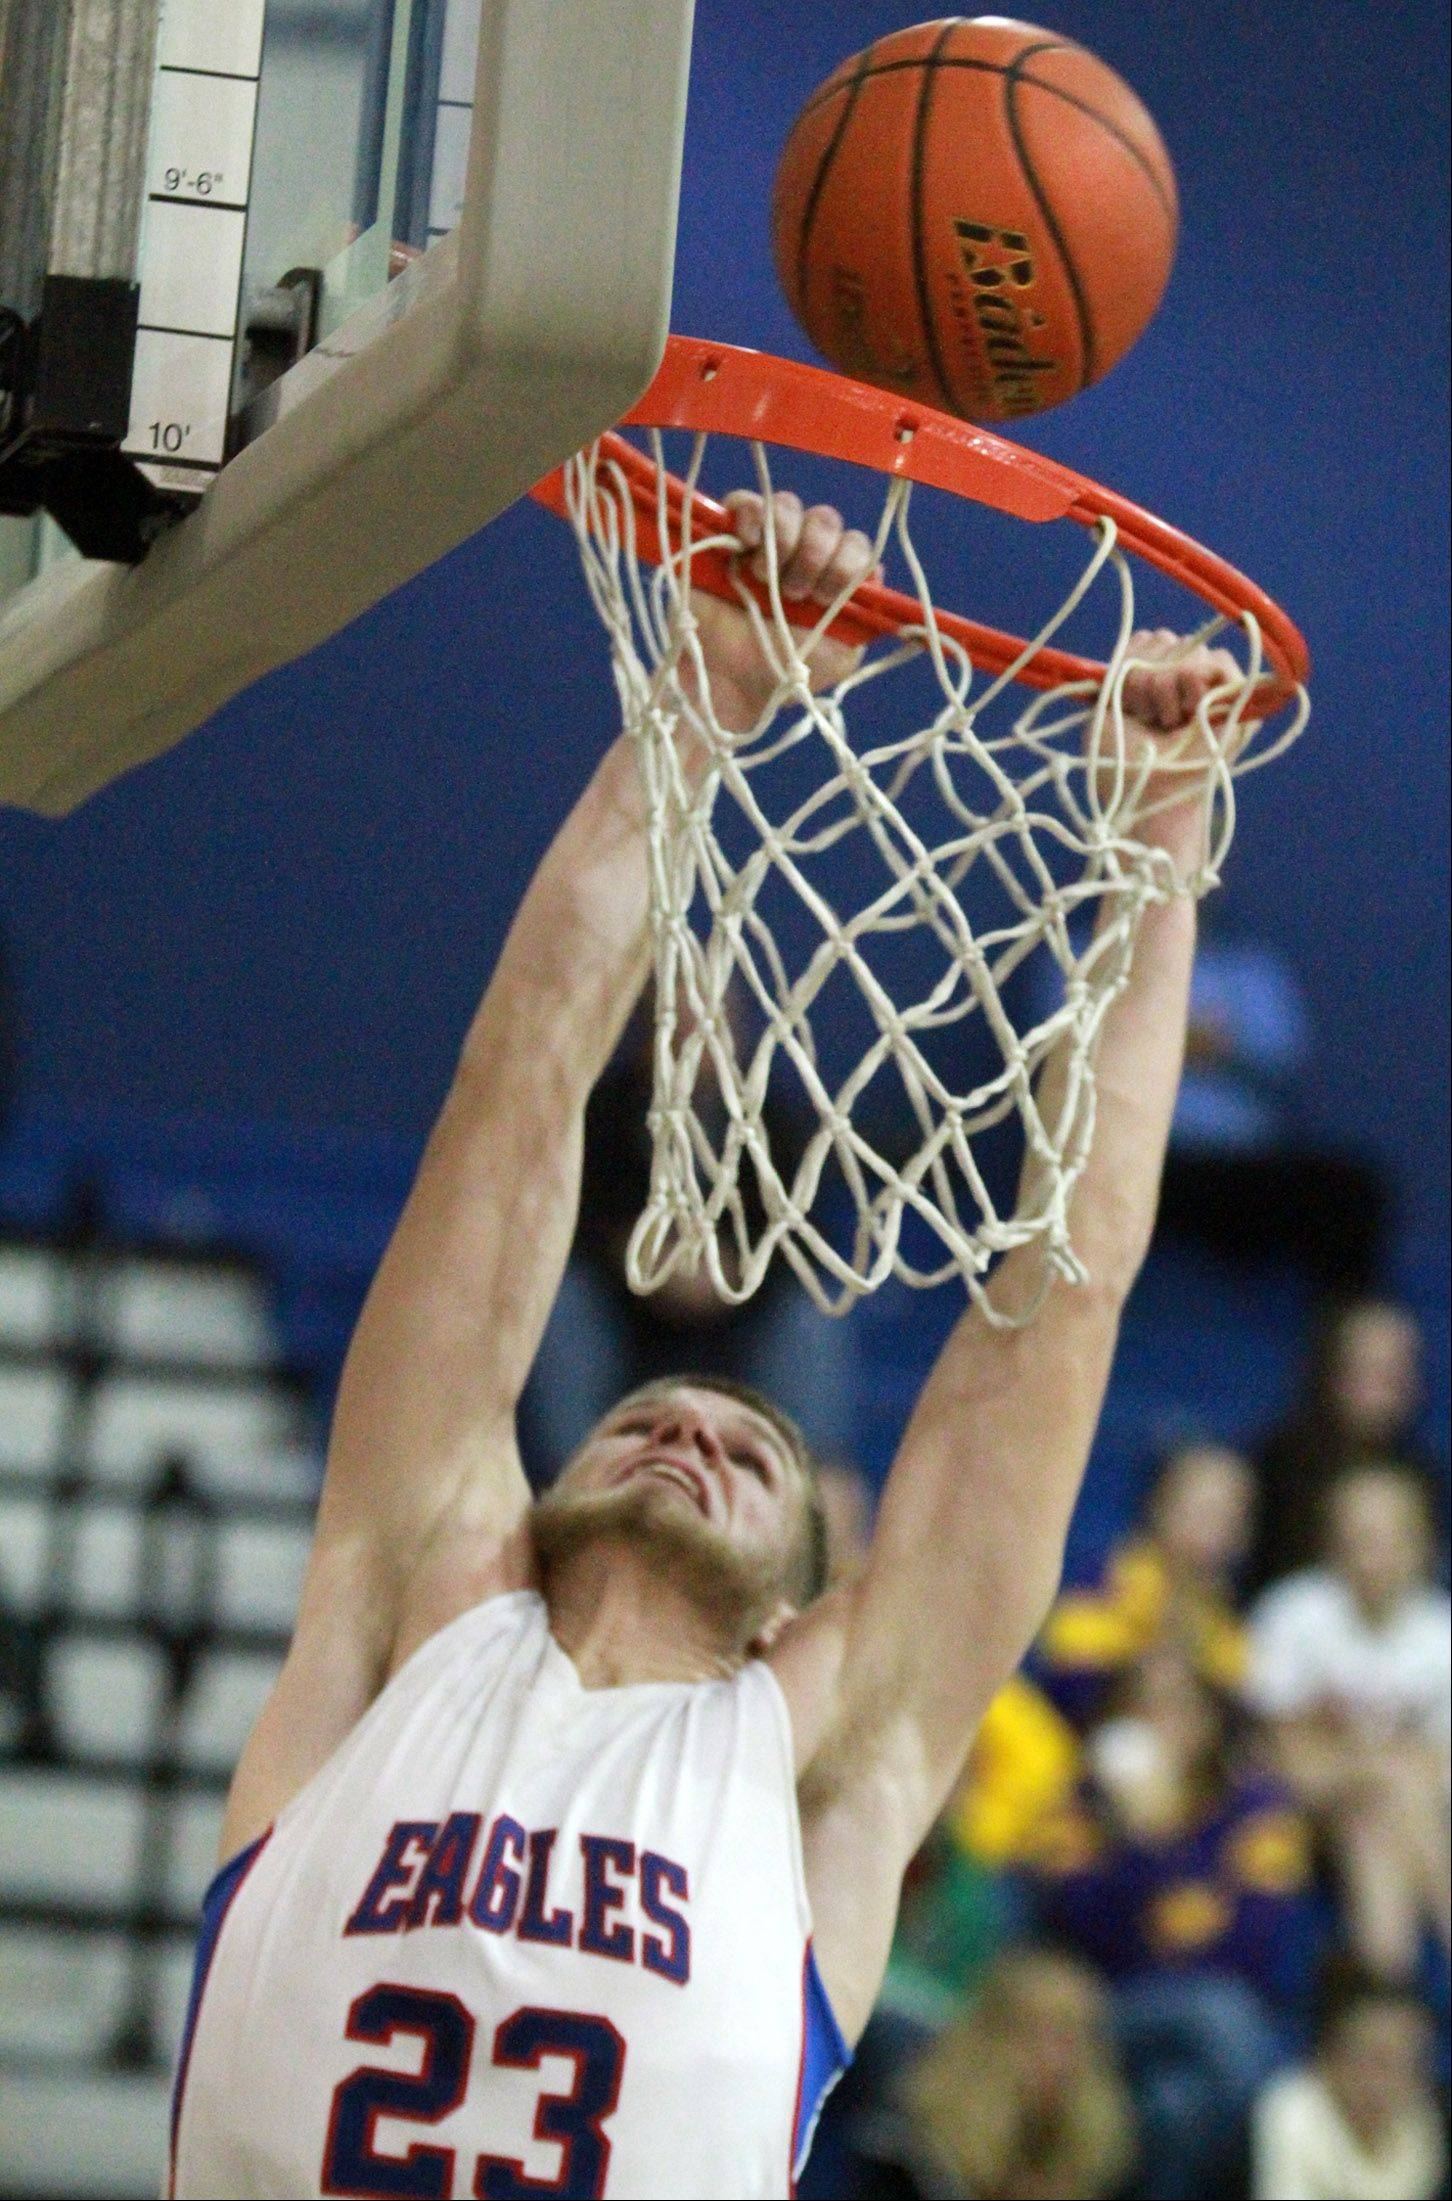 Lakes' Jake Kohler attempts a breakaway dunk against Wauconda Friday in Lake Villa.